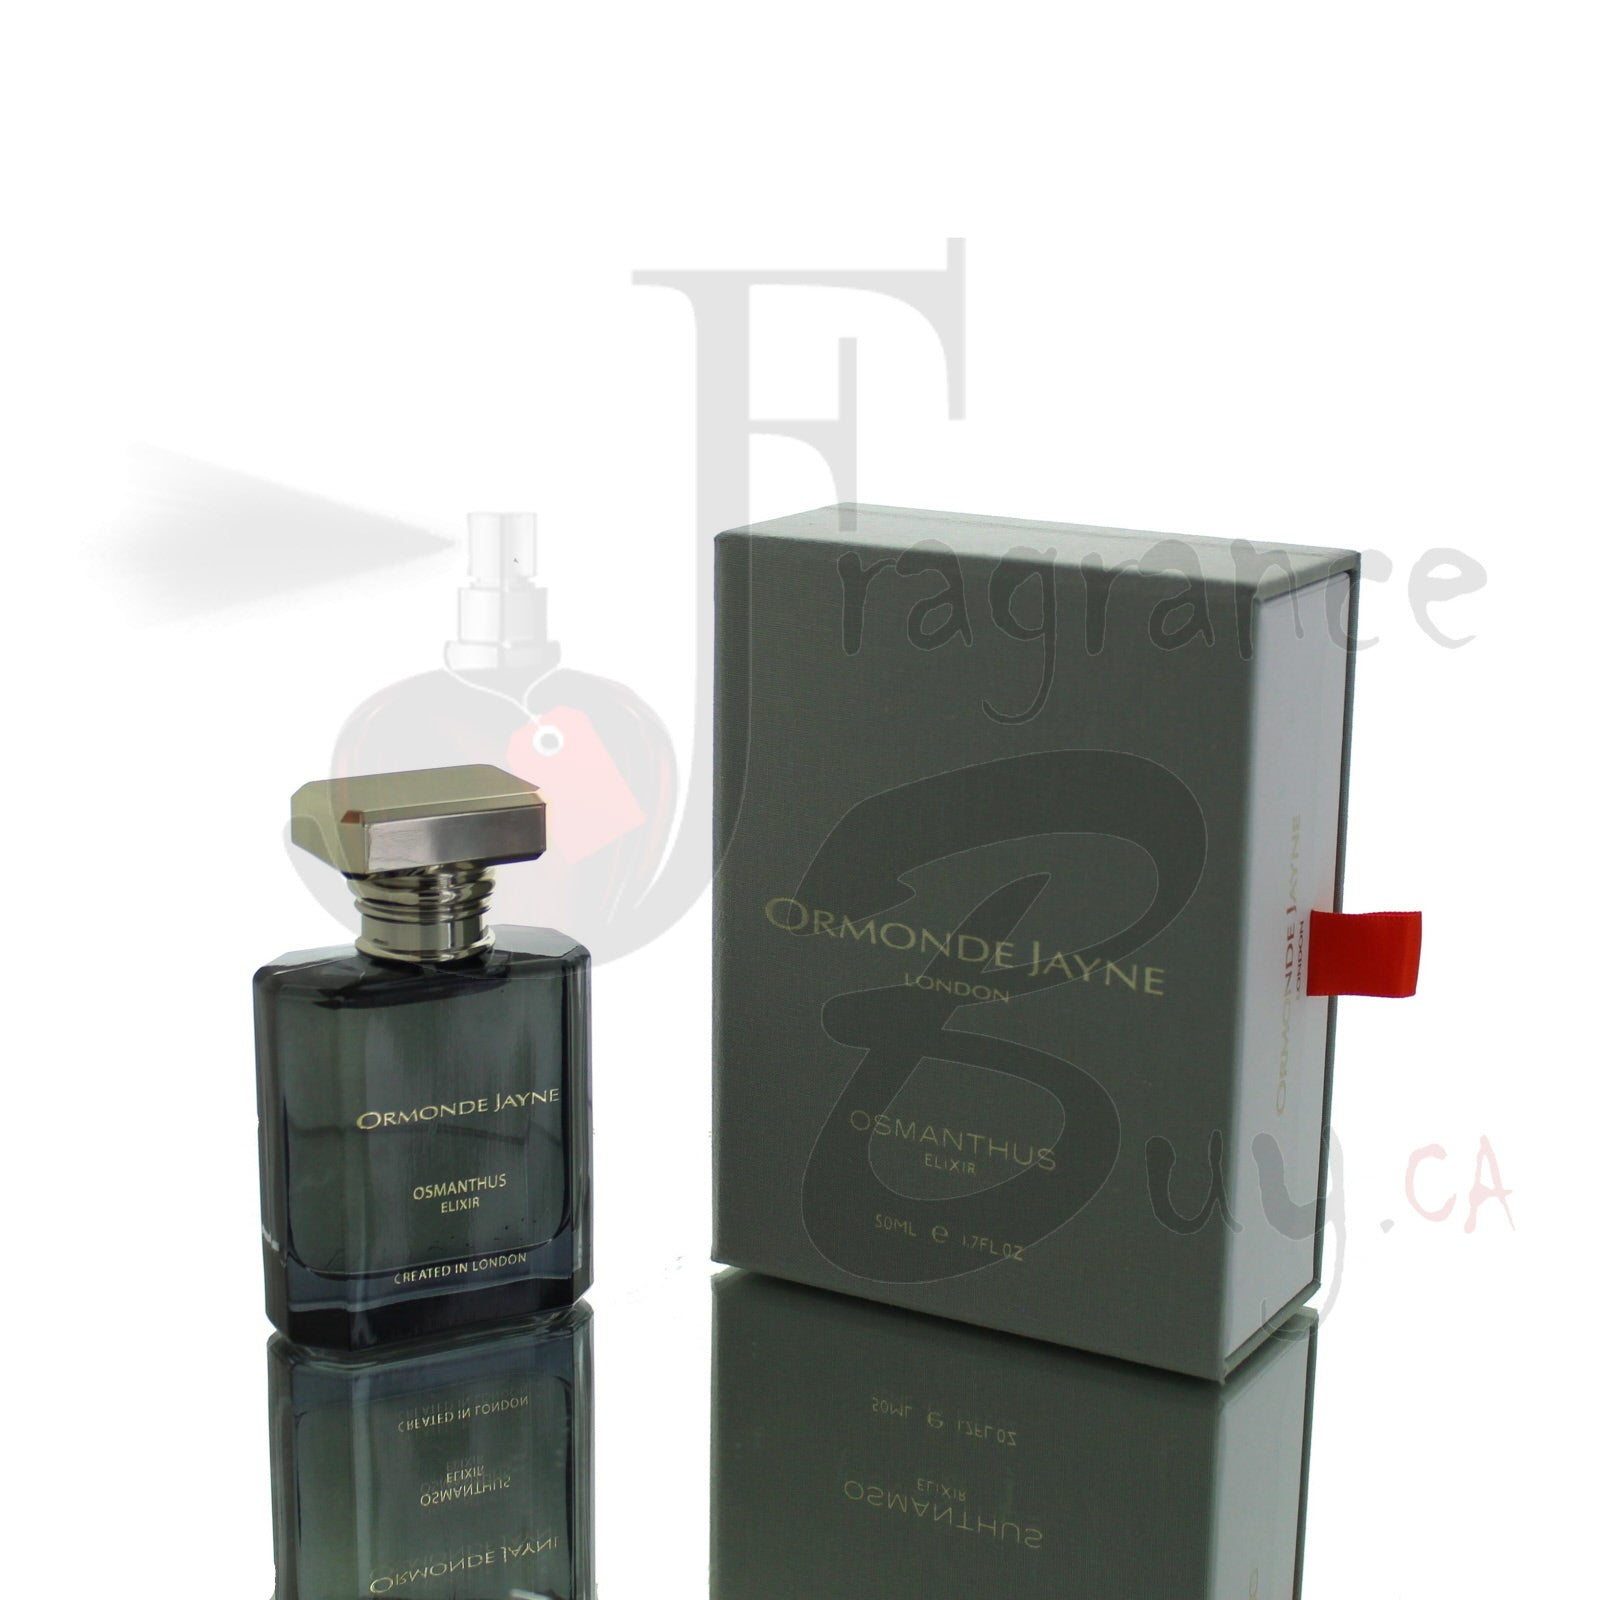 Ormonde Jayne Osmanthus Elixir For Man/Woman